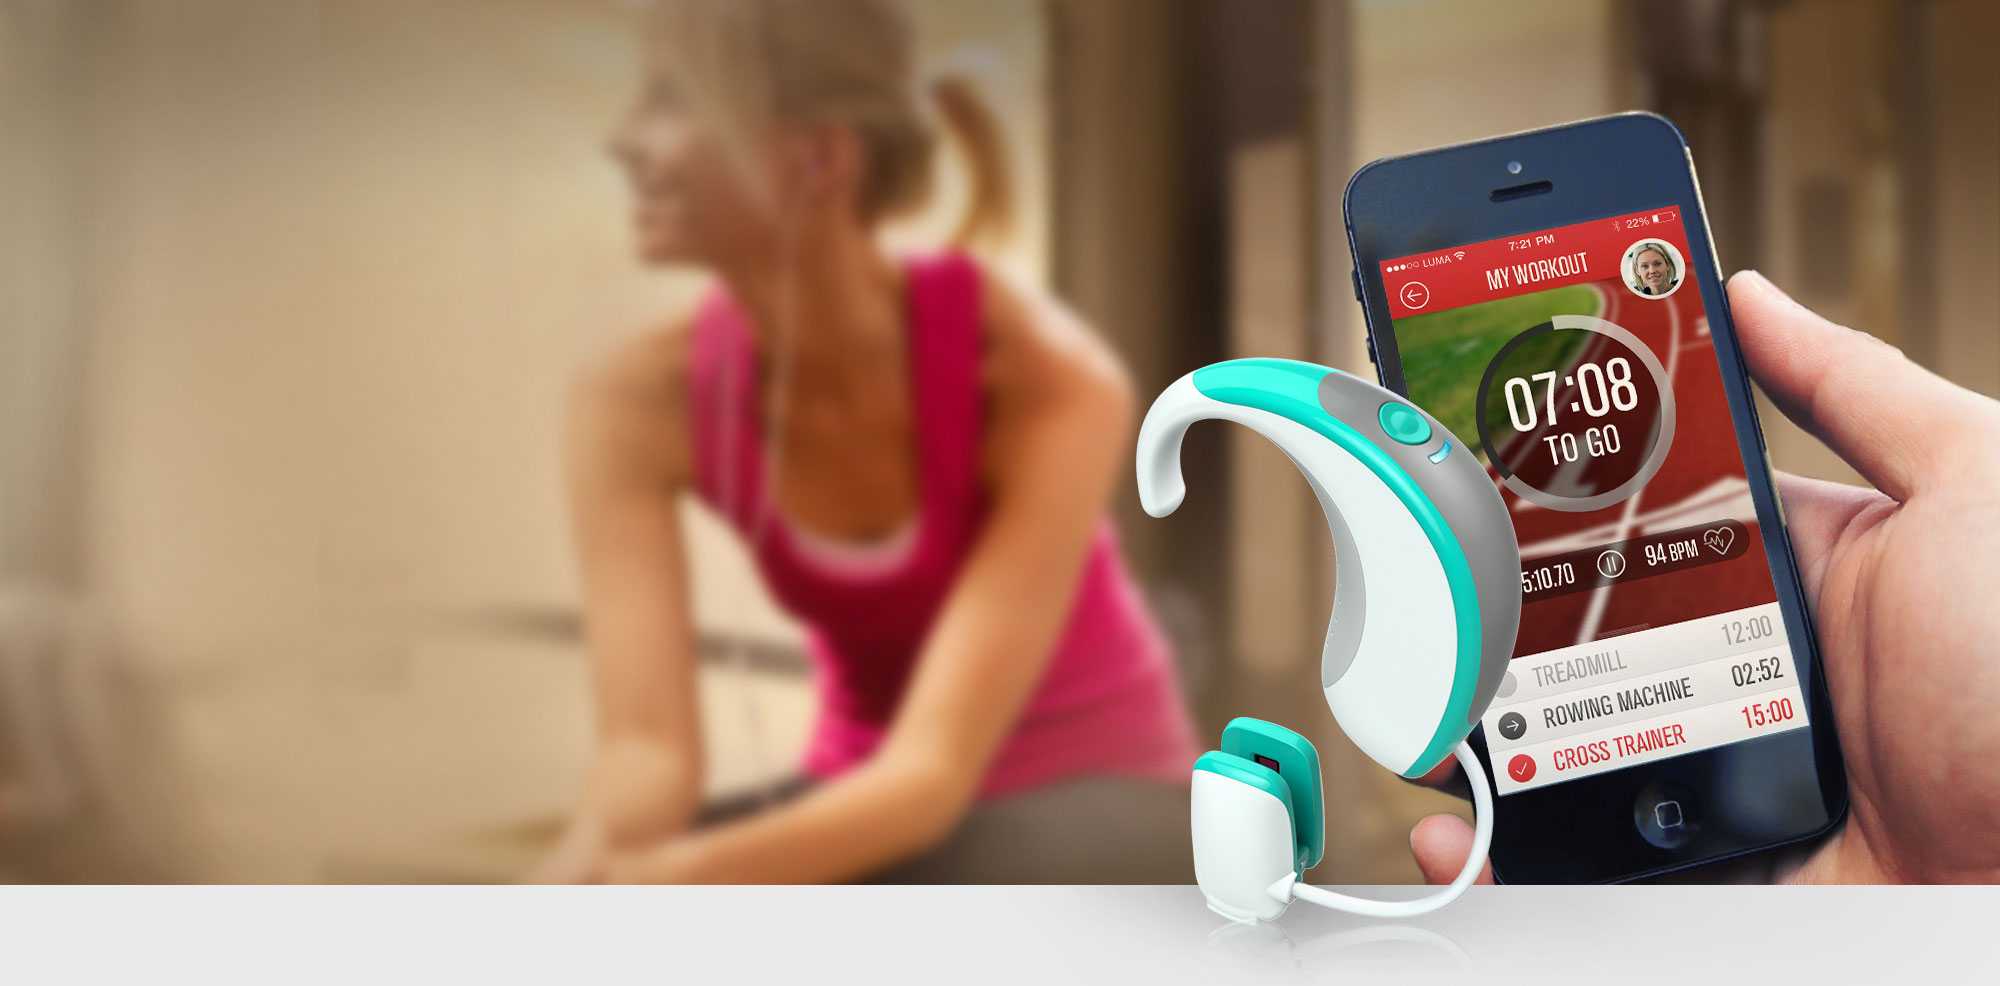 Benefits of tracking activity and fitness. Best home gym equipment. Tips and workouts for the gym. Gym exercise advice and good exercise routines. Workout tracker and sensor deals. Best online fitness tracker. Gym routines for women and fitness exercises for women. Safe workouts during pregnancy. Workouts and ideas to reduce stress.